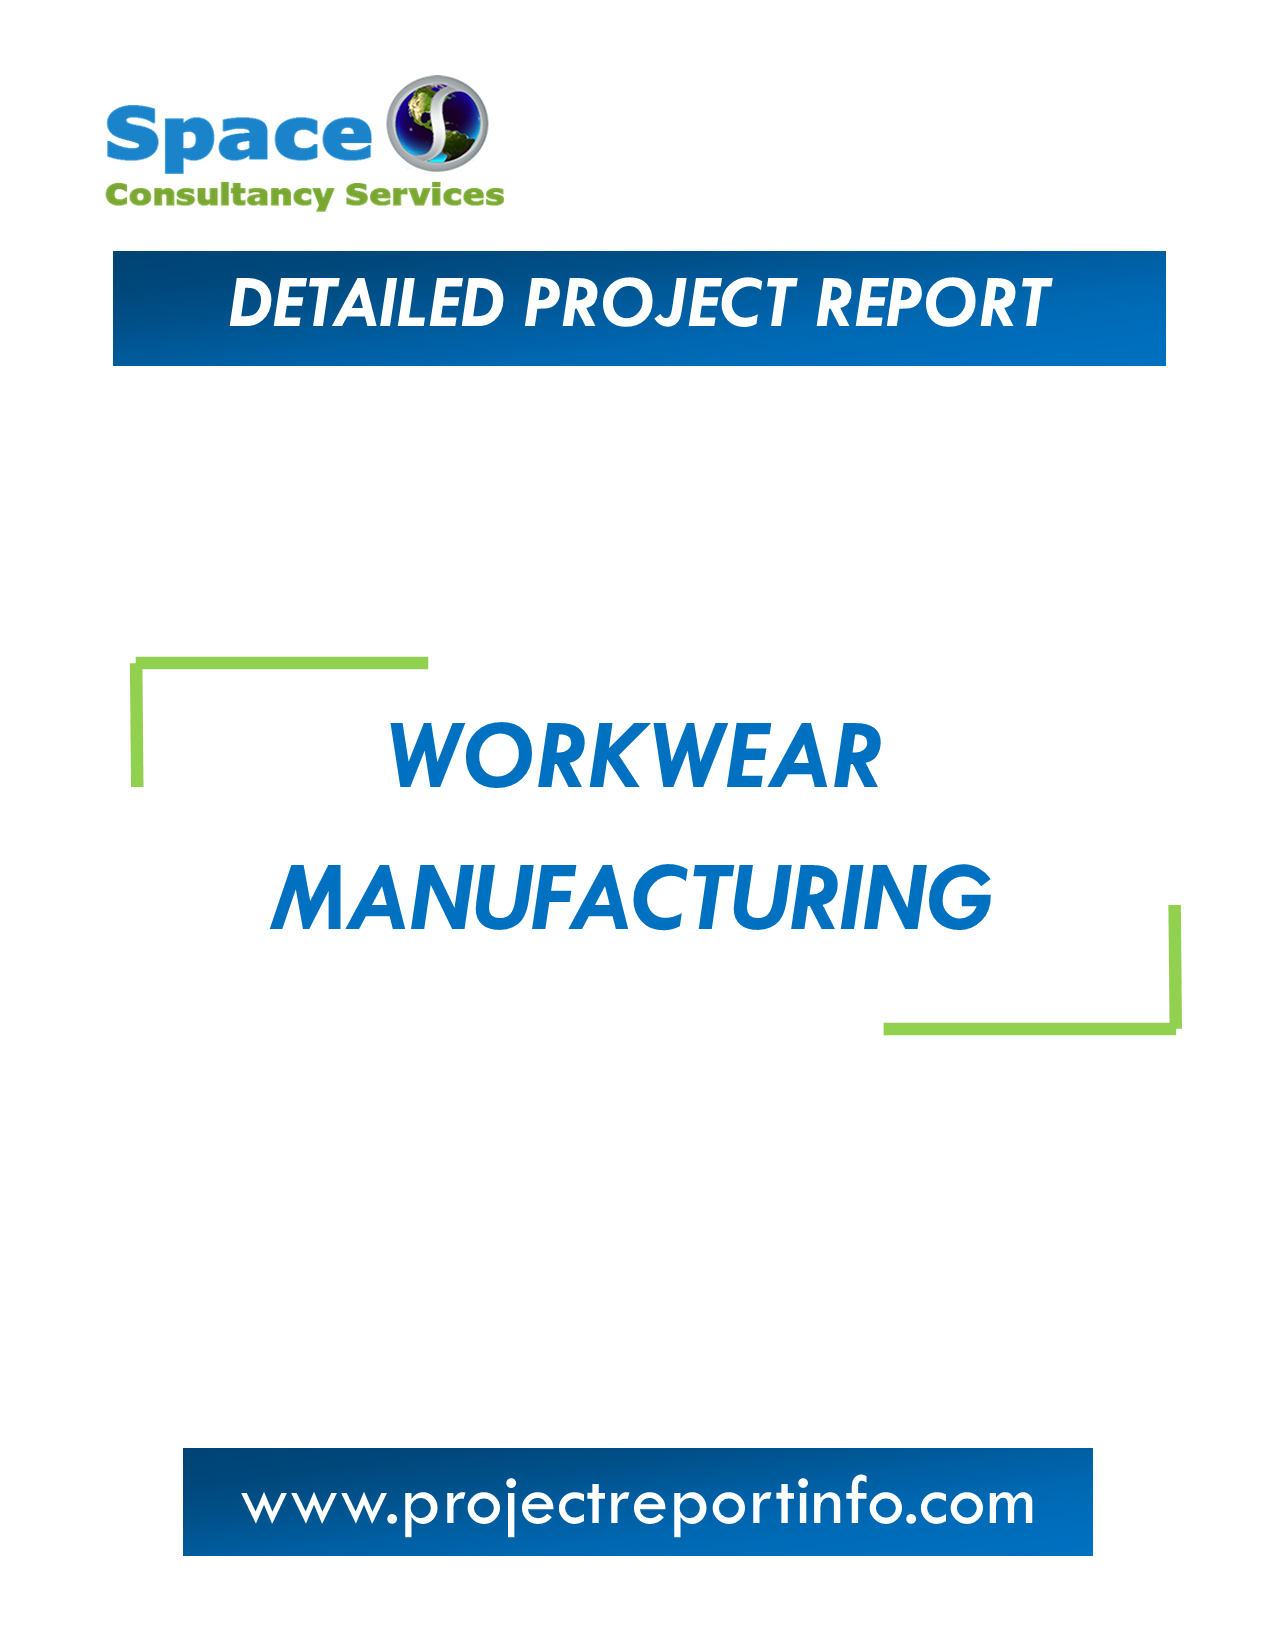 Project Report on Workwear Manufacturing